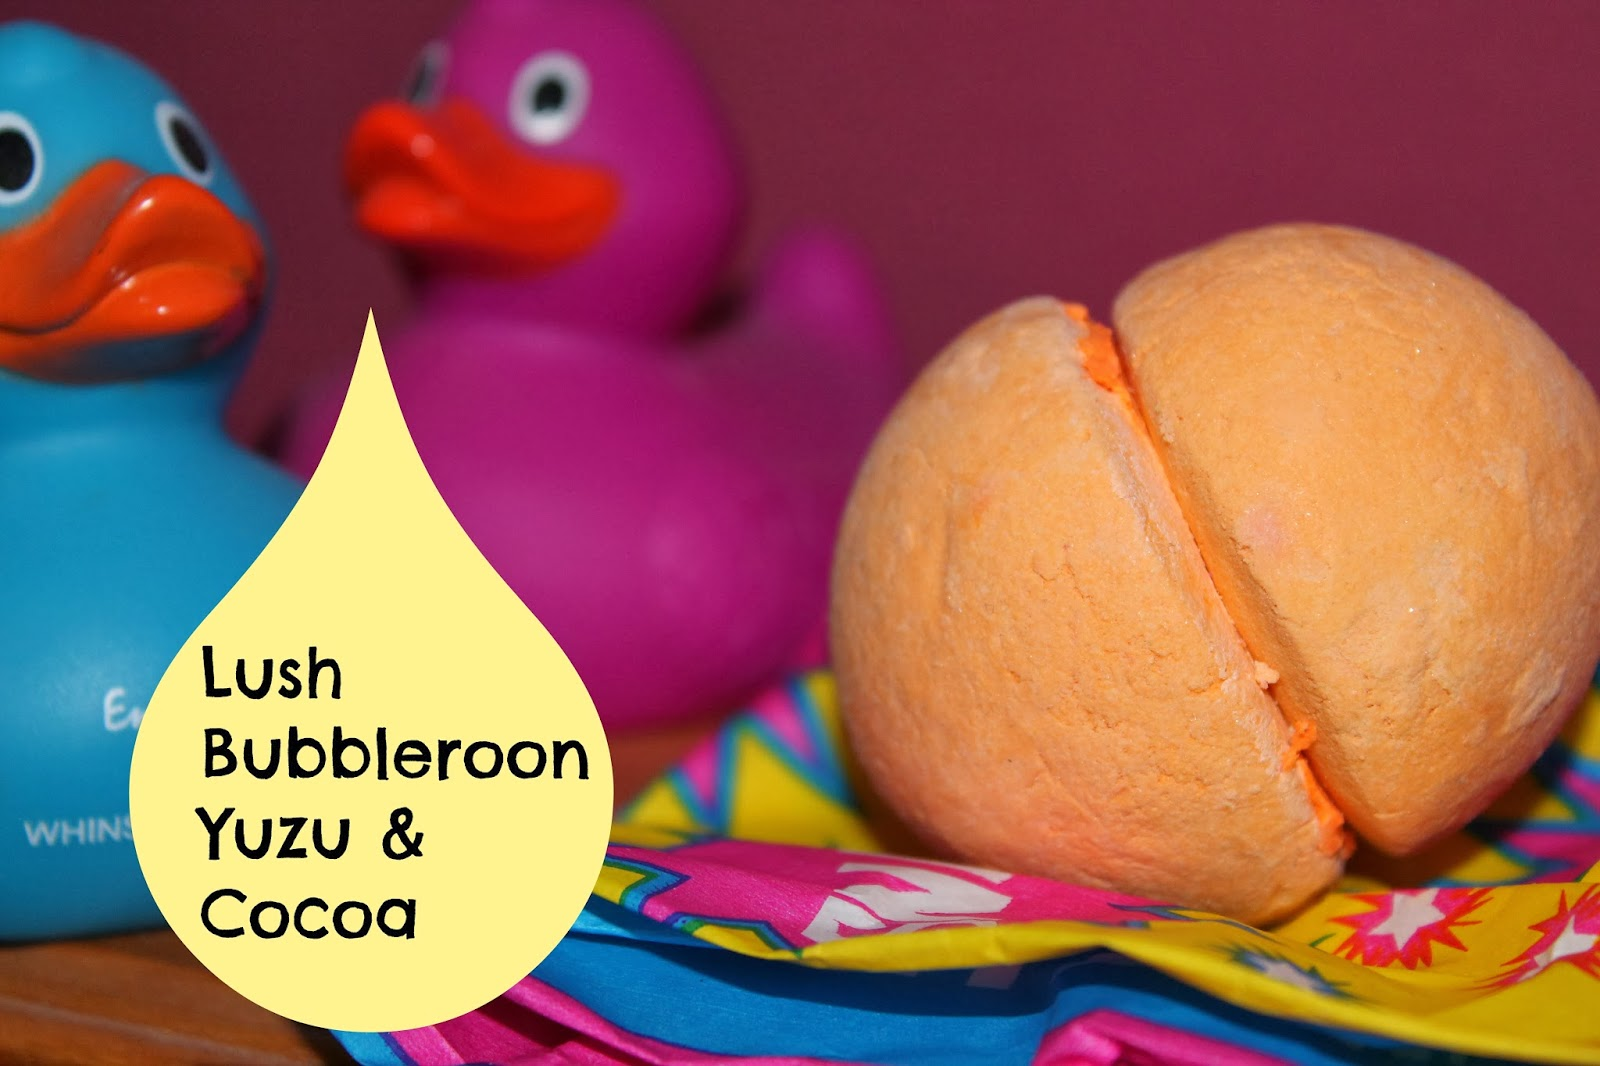 Lush Bubble Bar Yuzu and Cocoa